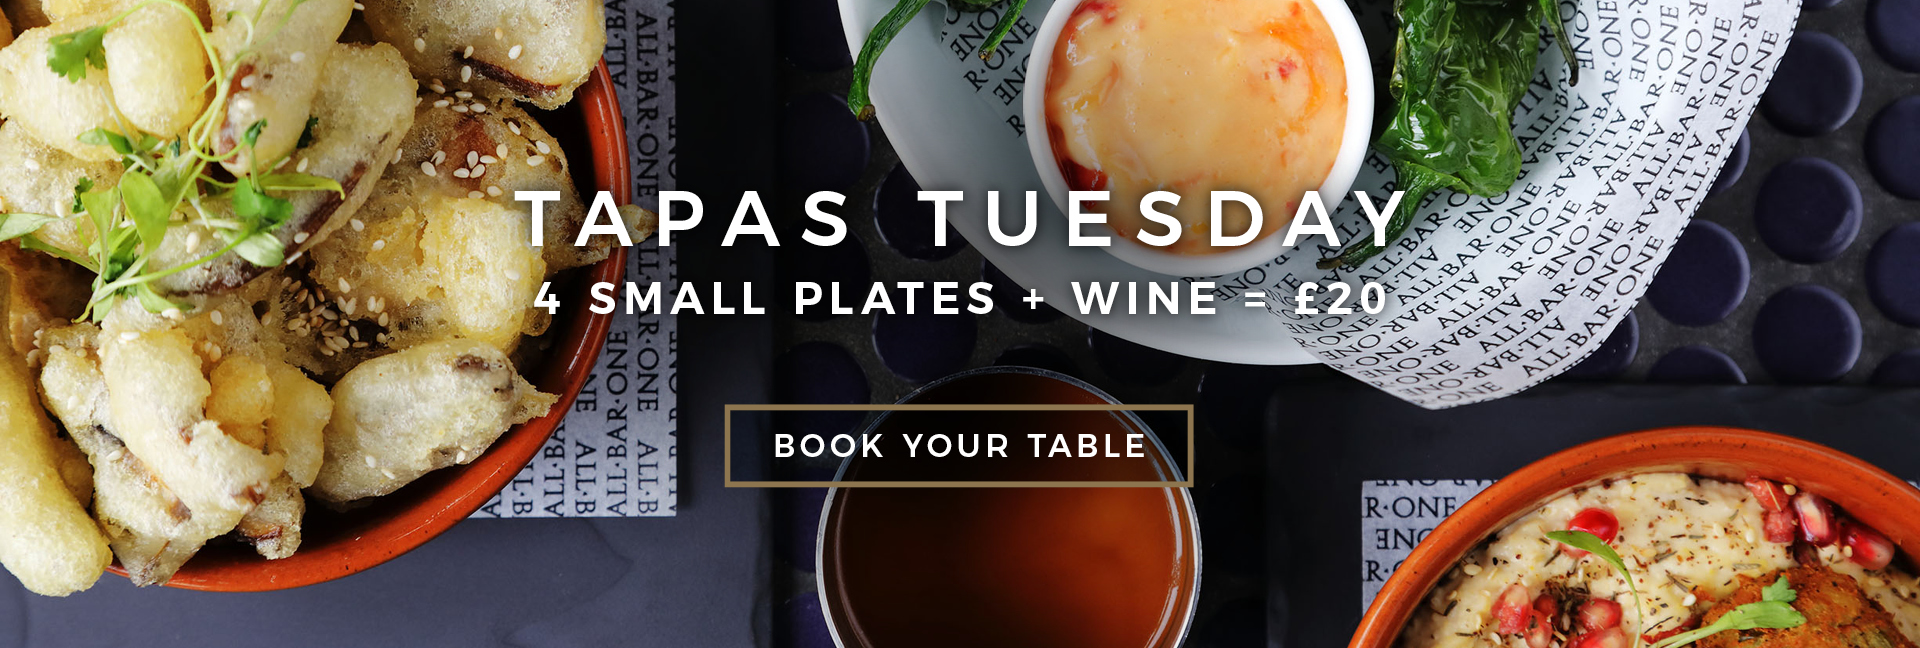 Tapas Tuesday at All Bar One Brighton - Book now